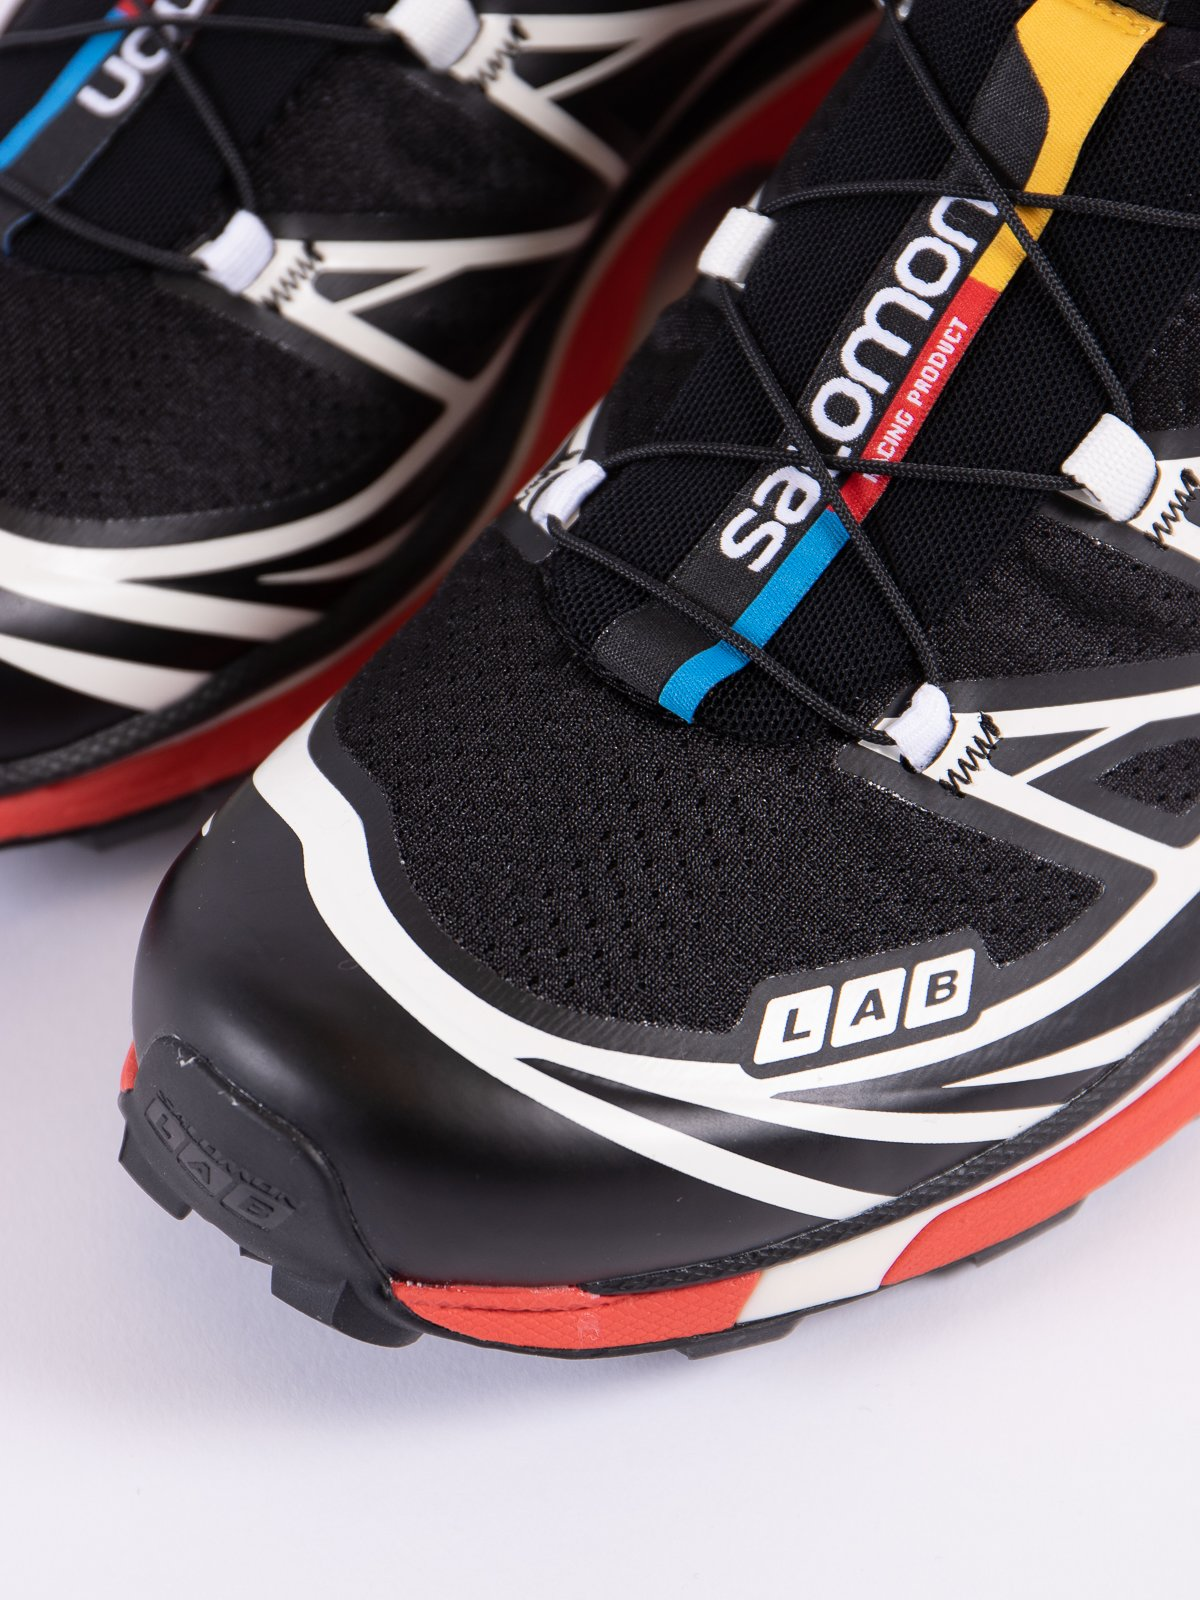 BLACK/VANILLA/RACING RED XT–6 SOFTGROUND LT ADV - Image 3